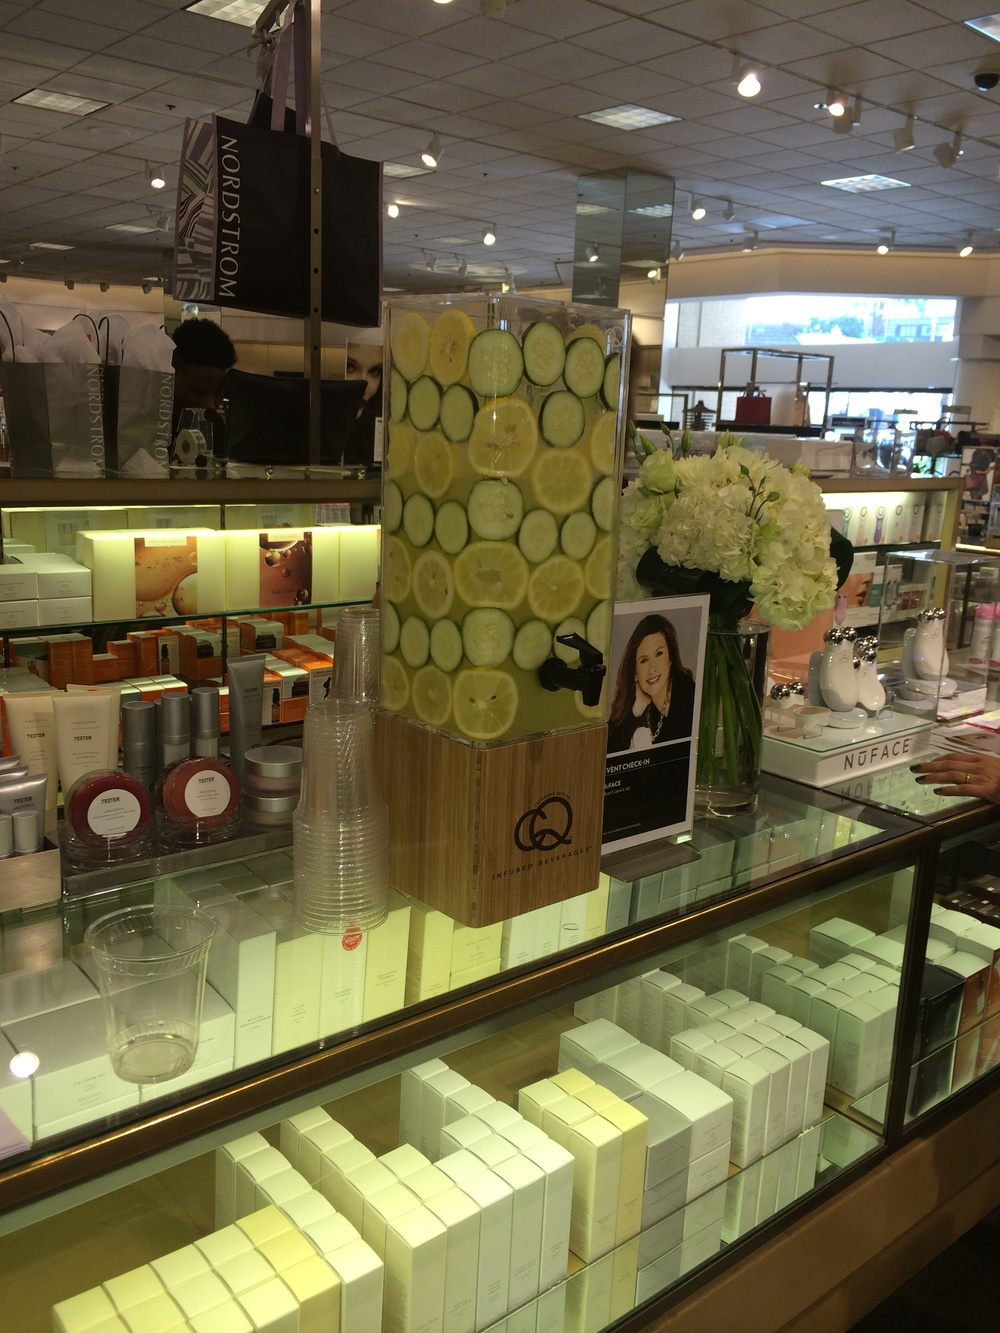 CQ Infused Spa Water - NuFace Promo at Nordstroms